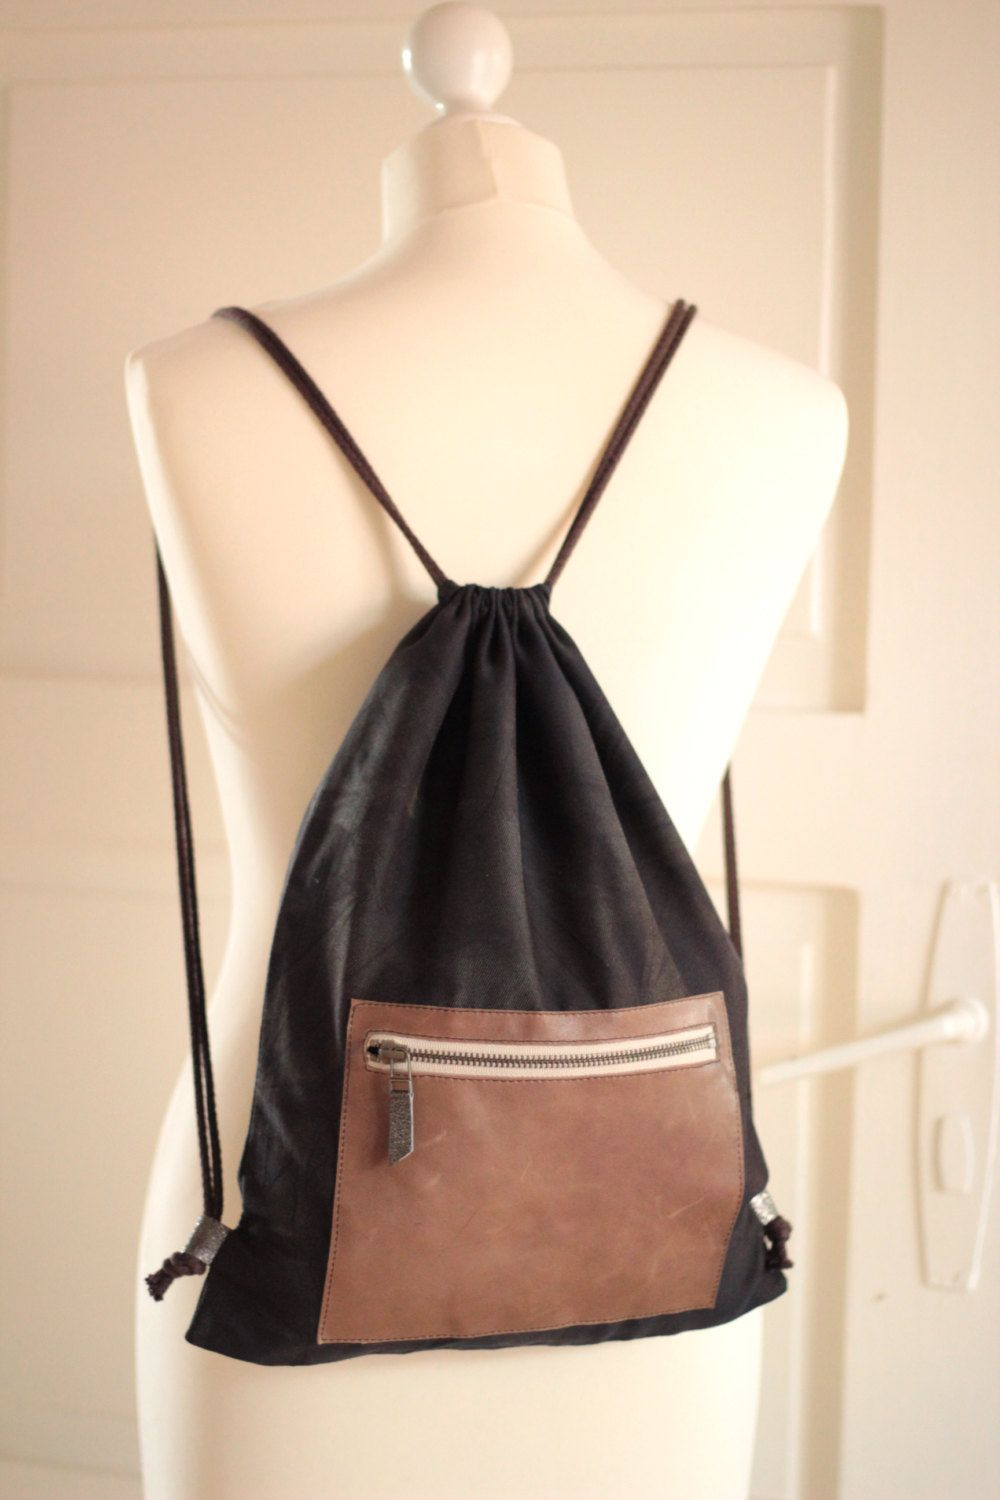 Adjustable drawstring backpack by CosmosBits on Etsy, €40.00 ...